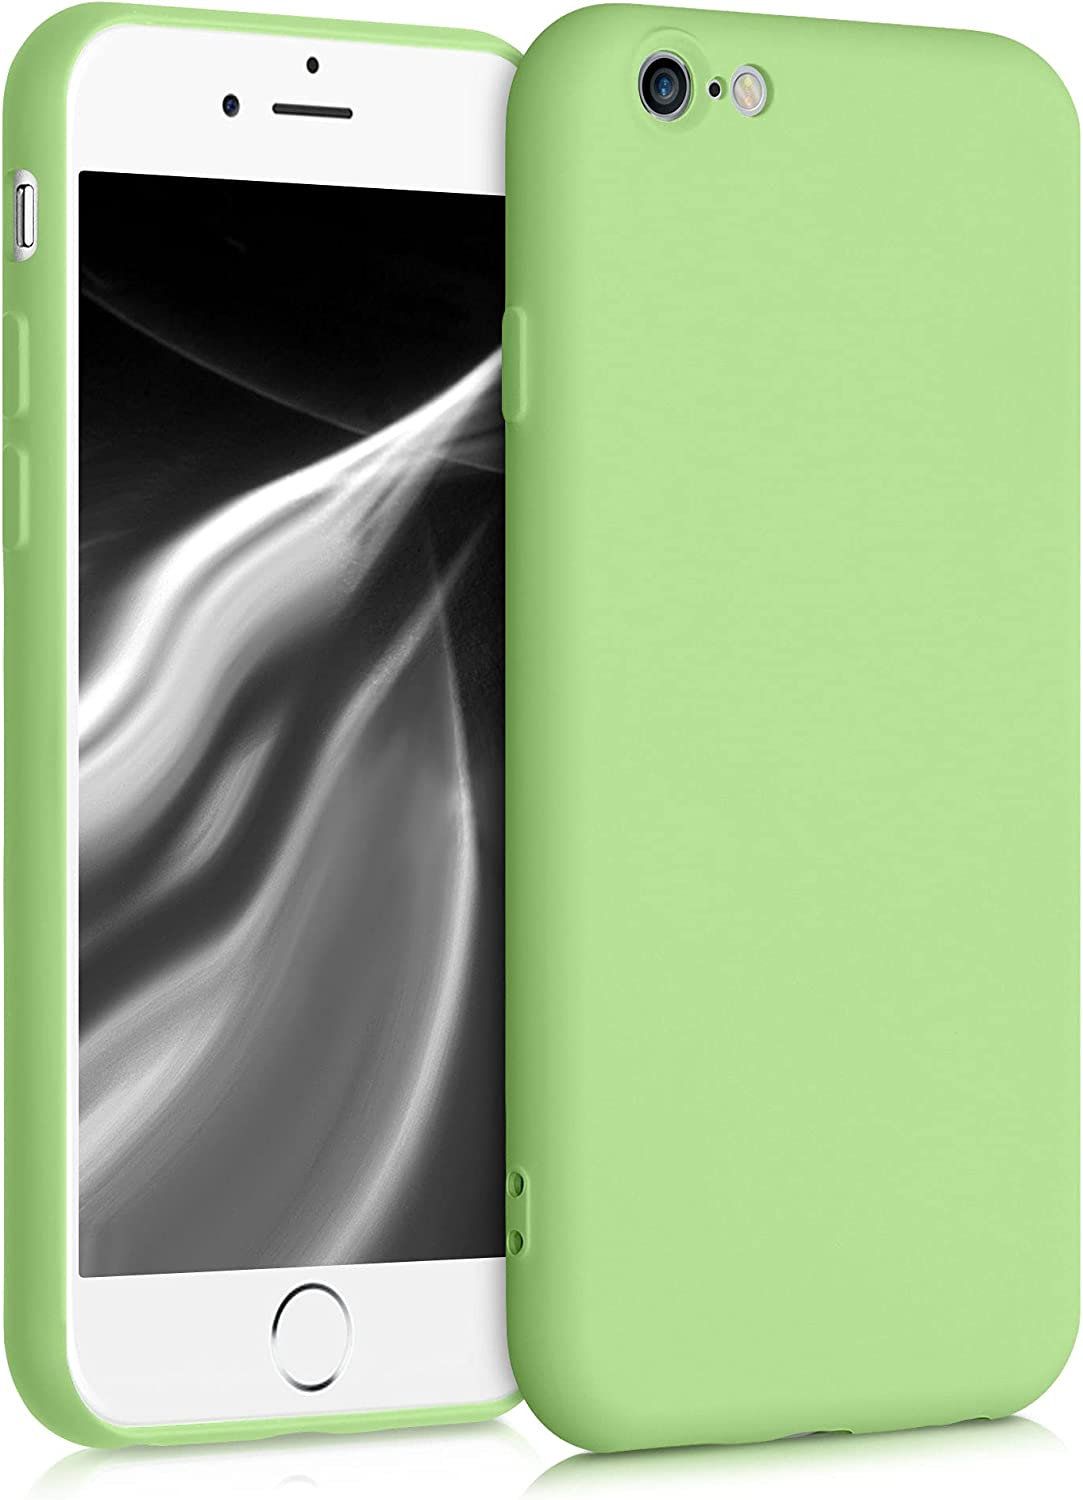 kwmobile Case Compatible with Apple iPhone 6 / 6S - Soft Rubberized TPU Slim Protective Cover for Phone - Tomatillo